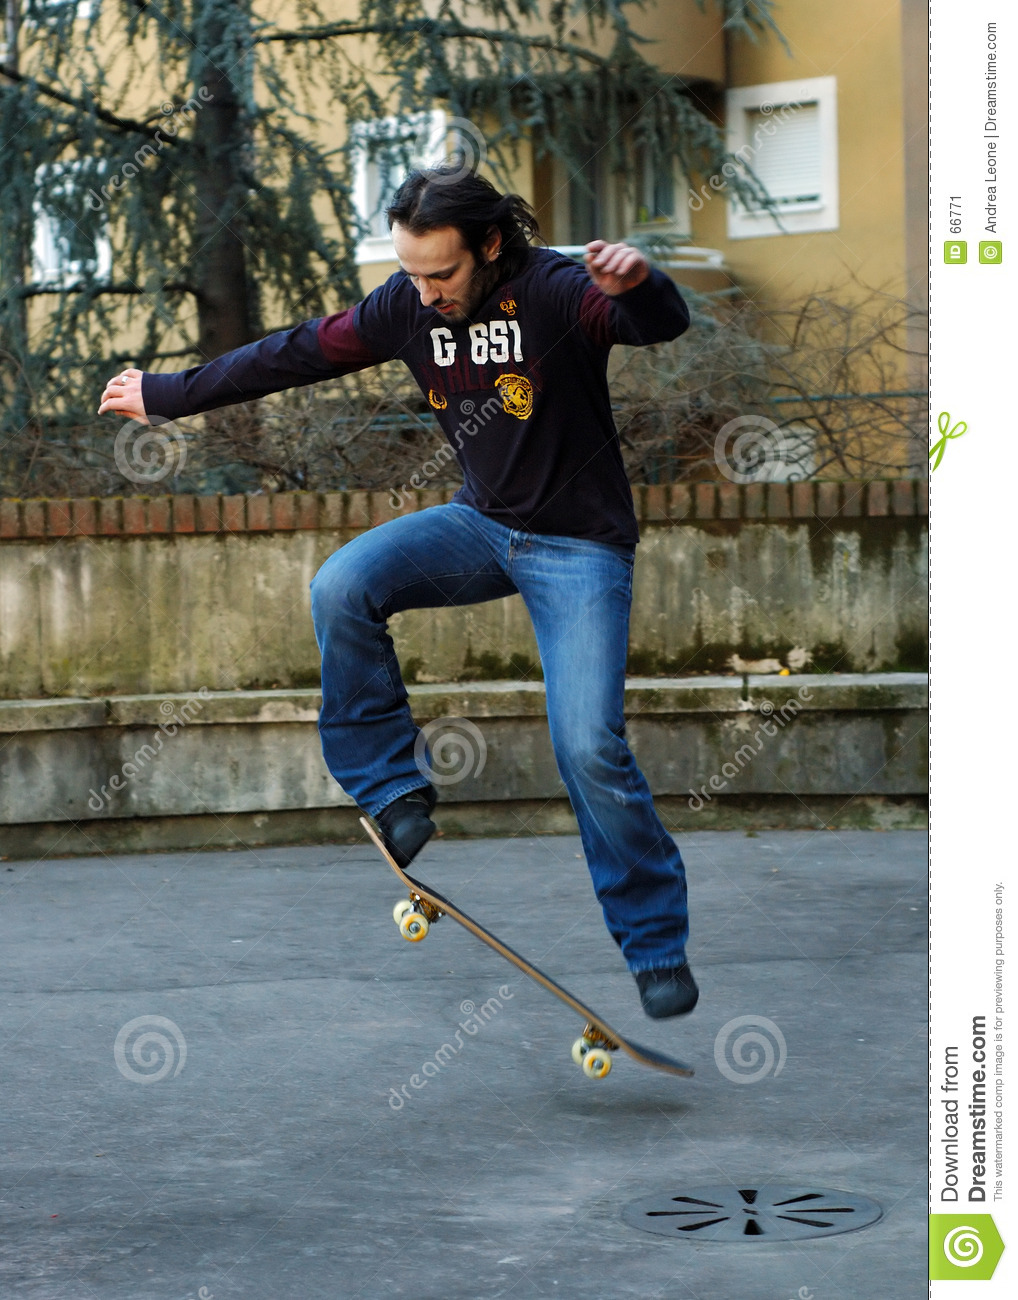 Boy skateboarding II